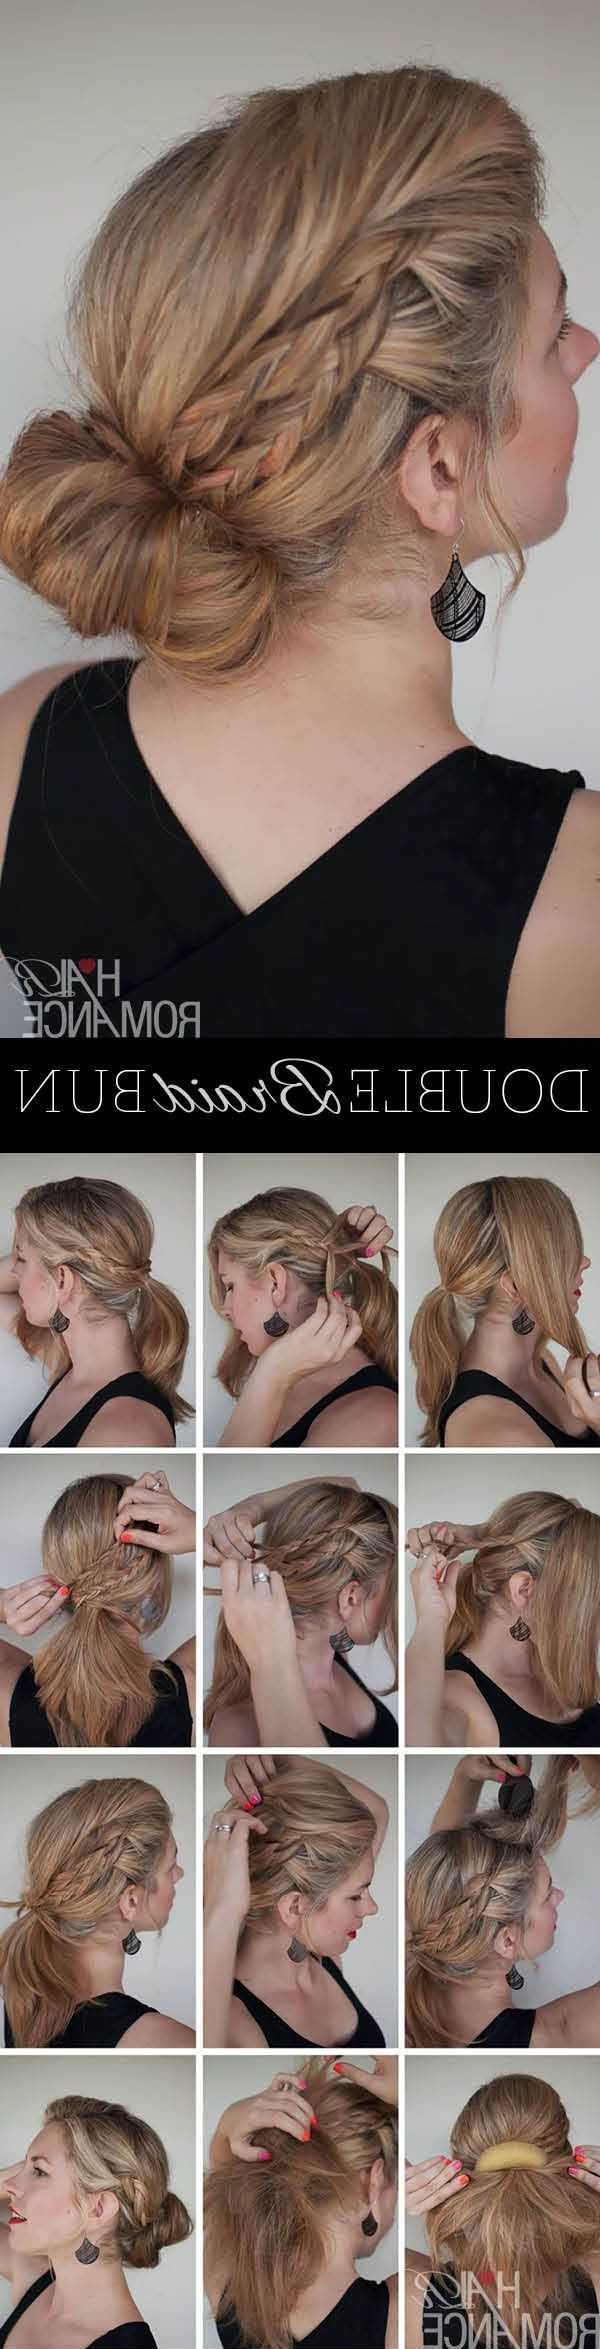 14 Amazing Double Braid Bun Hairstyles – Pretty Designs In Current Messy Double Braid Ponytail Hairstyles (View 18 of 20)